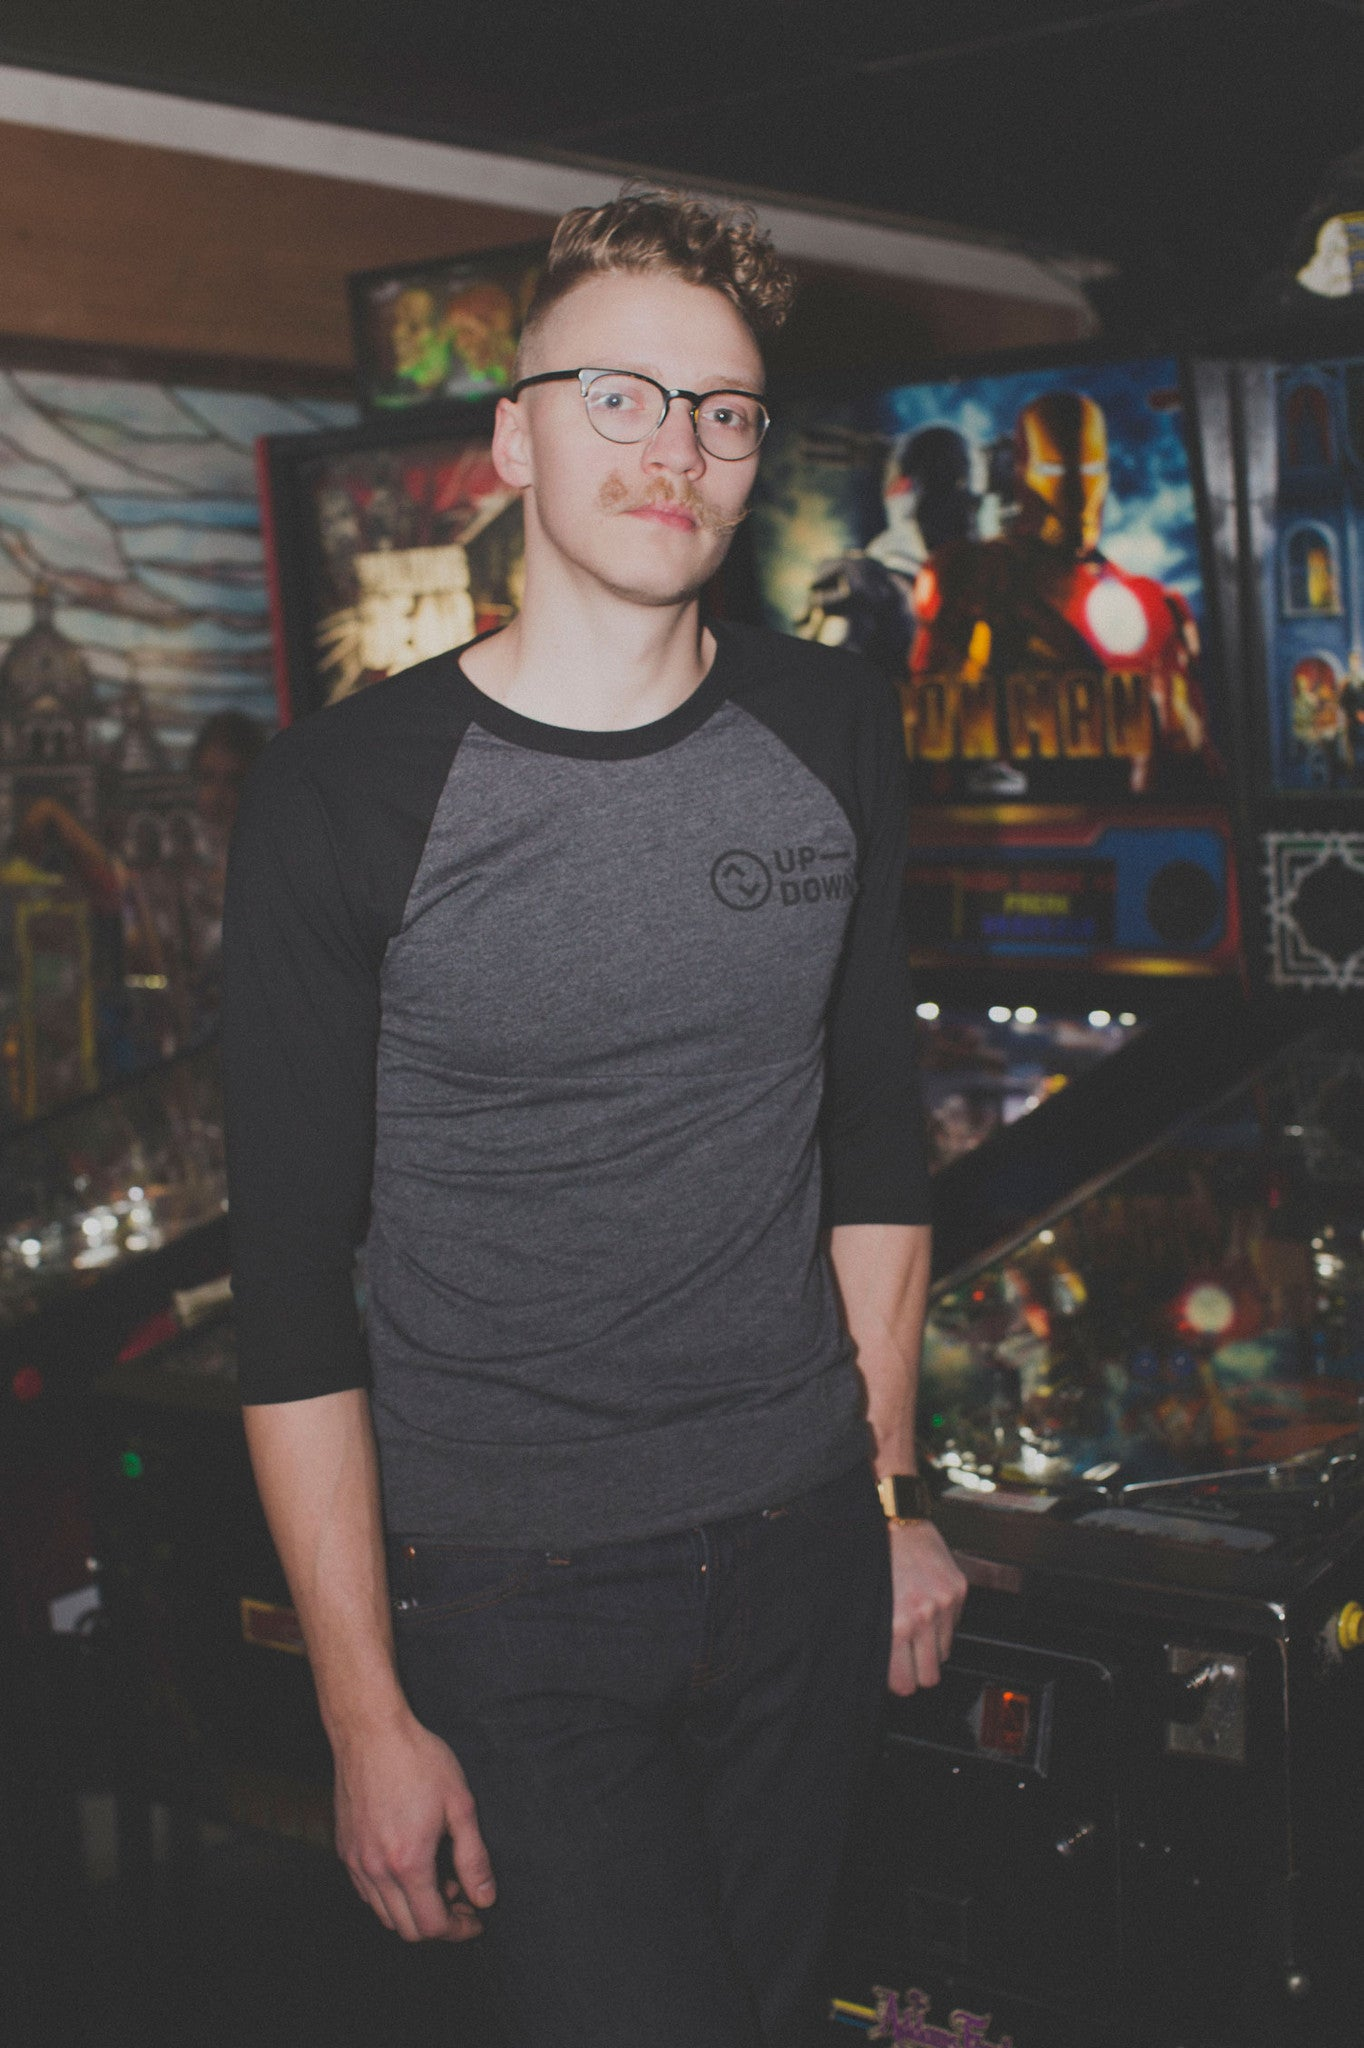 updown arcade bar baseball tee in black/grey